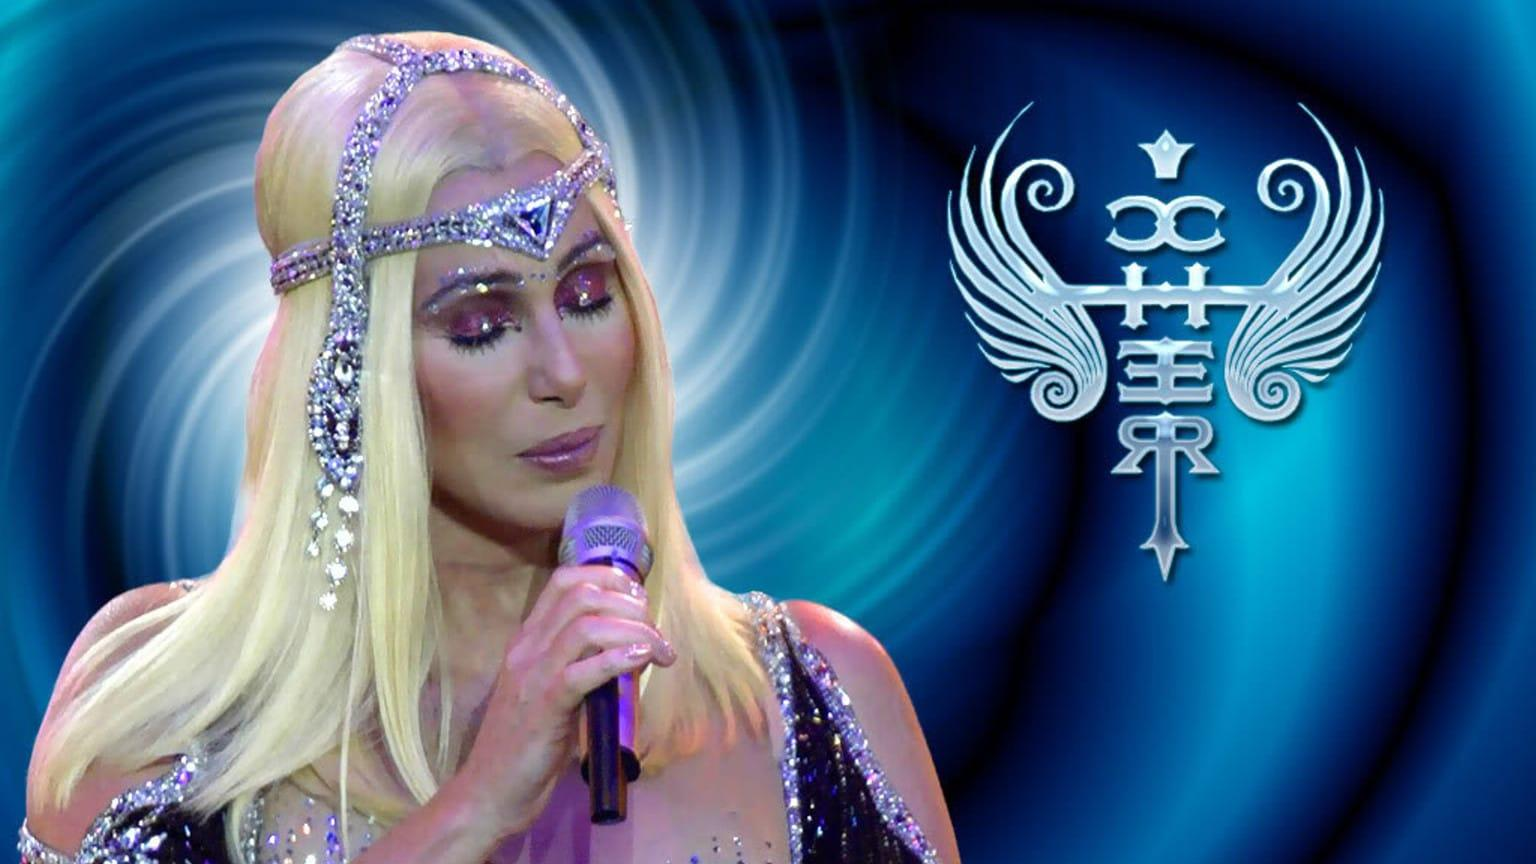 Moviegoer: Cher: Live In Concert From Las Vegas